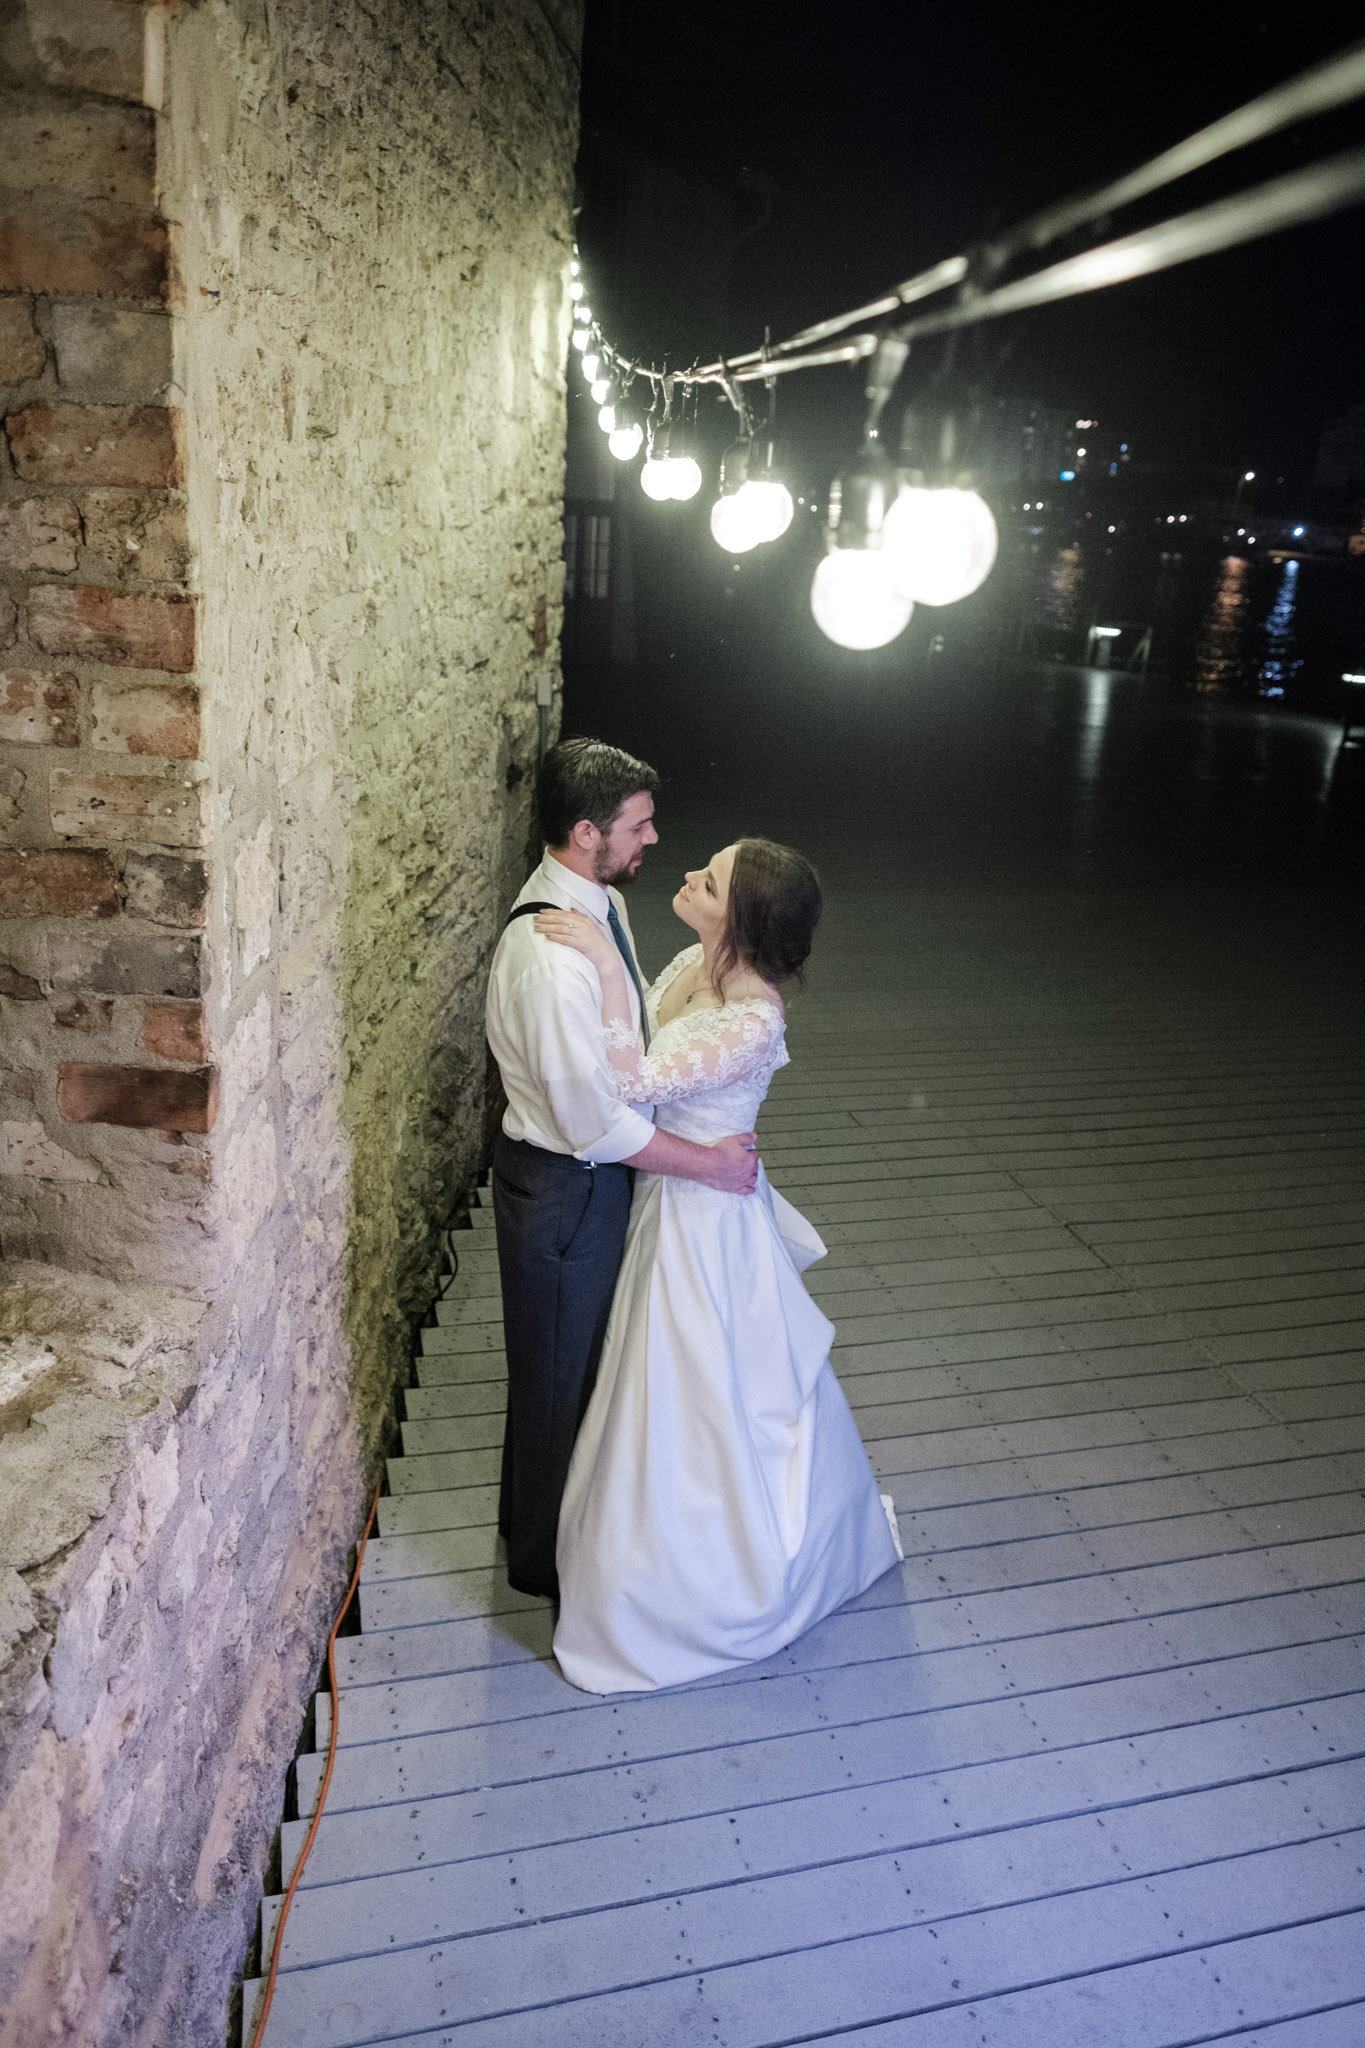 Bride and groom portrait under market lights on the dock with limestone wall behind groom at Prairie Street Brewhouse in Rockford, Illinois.